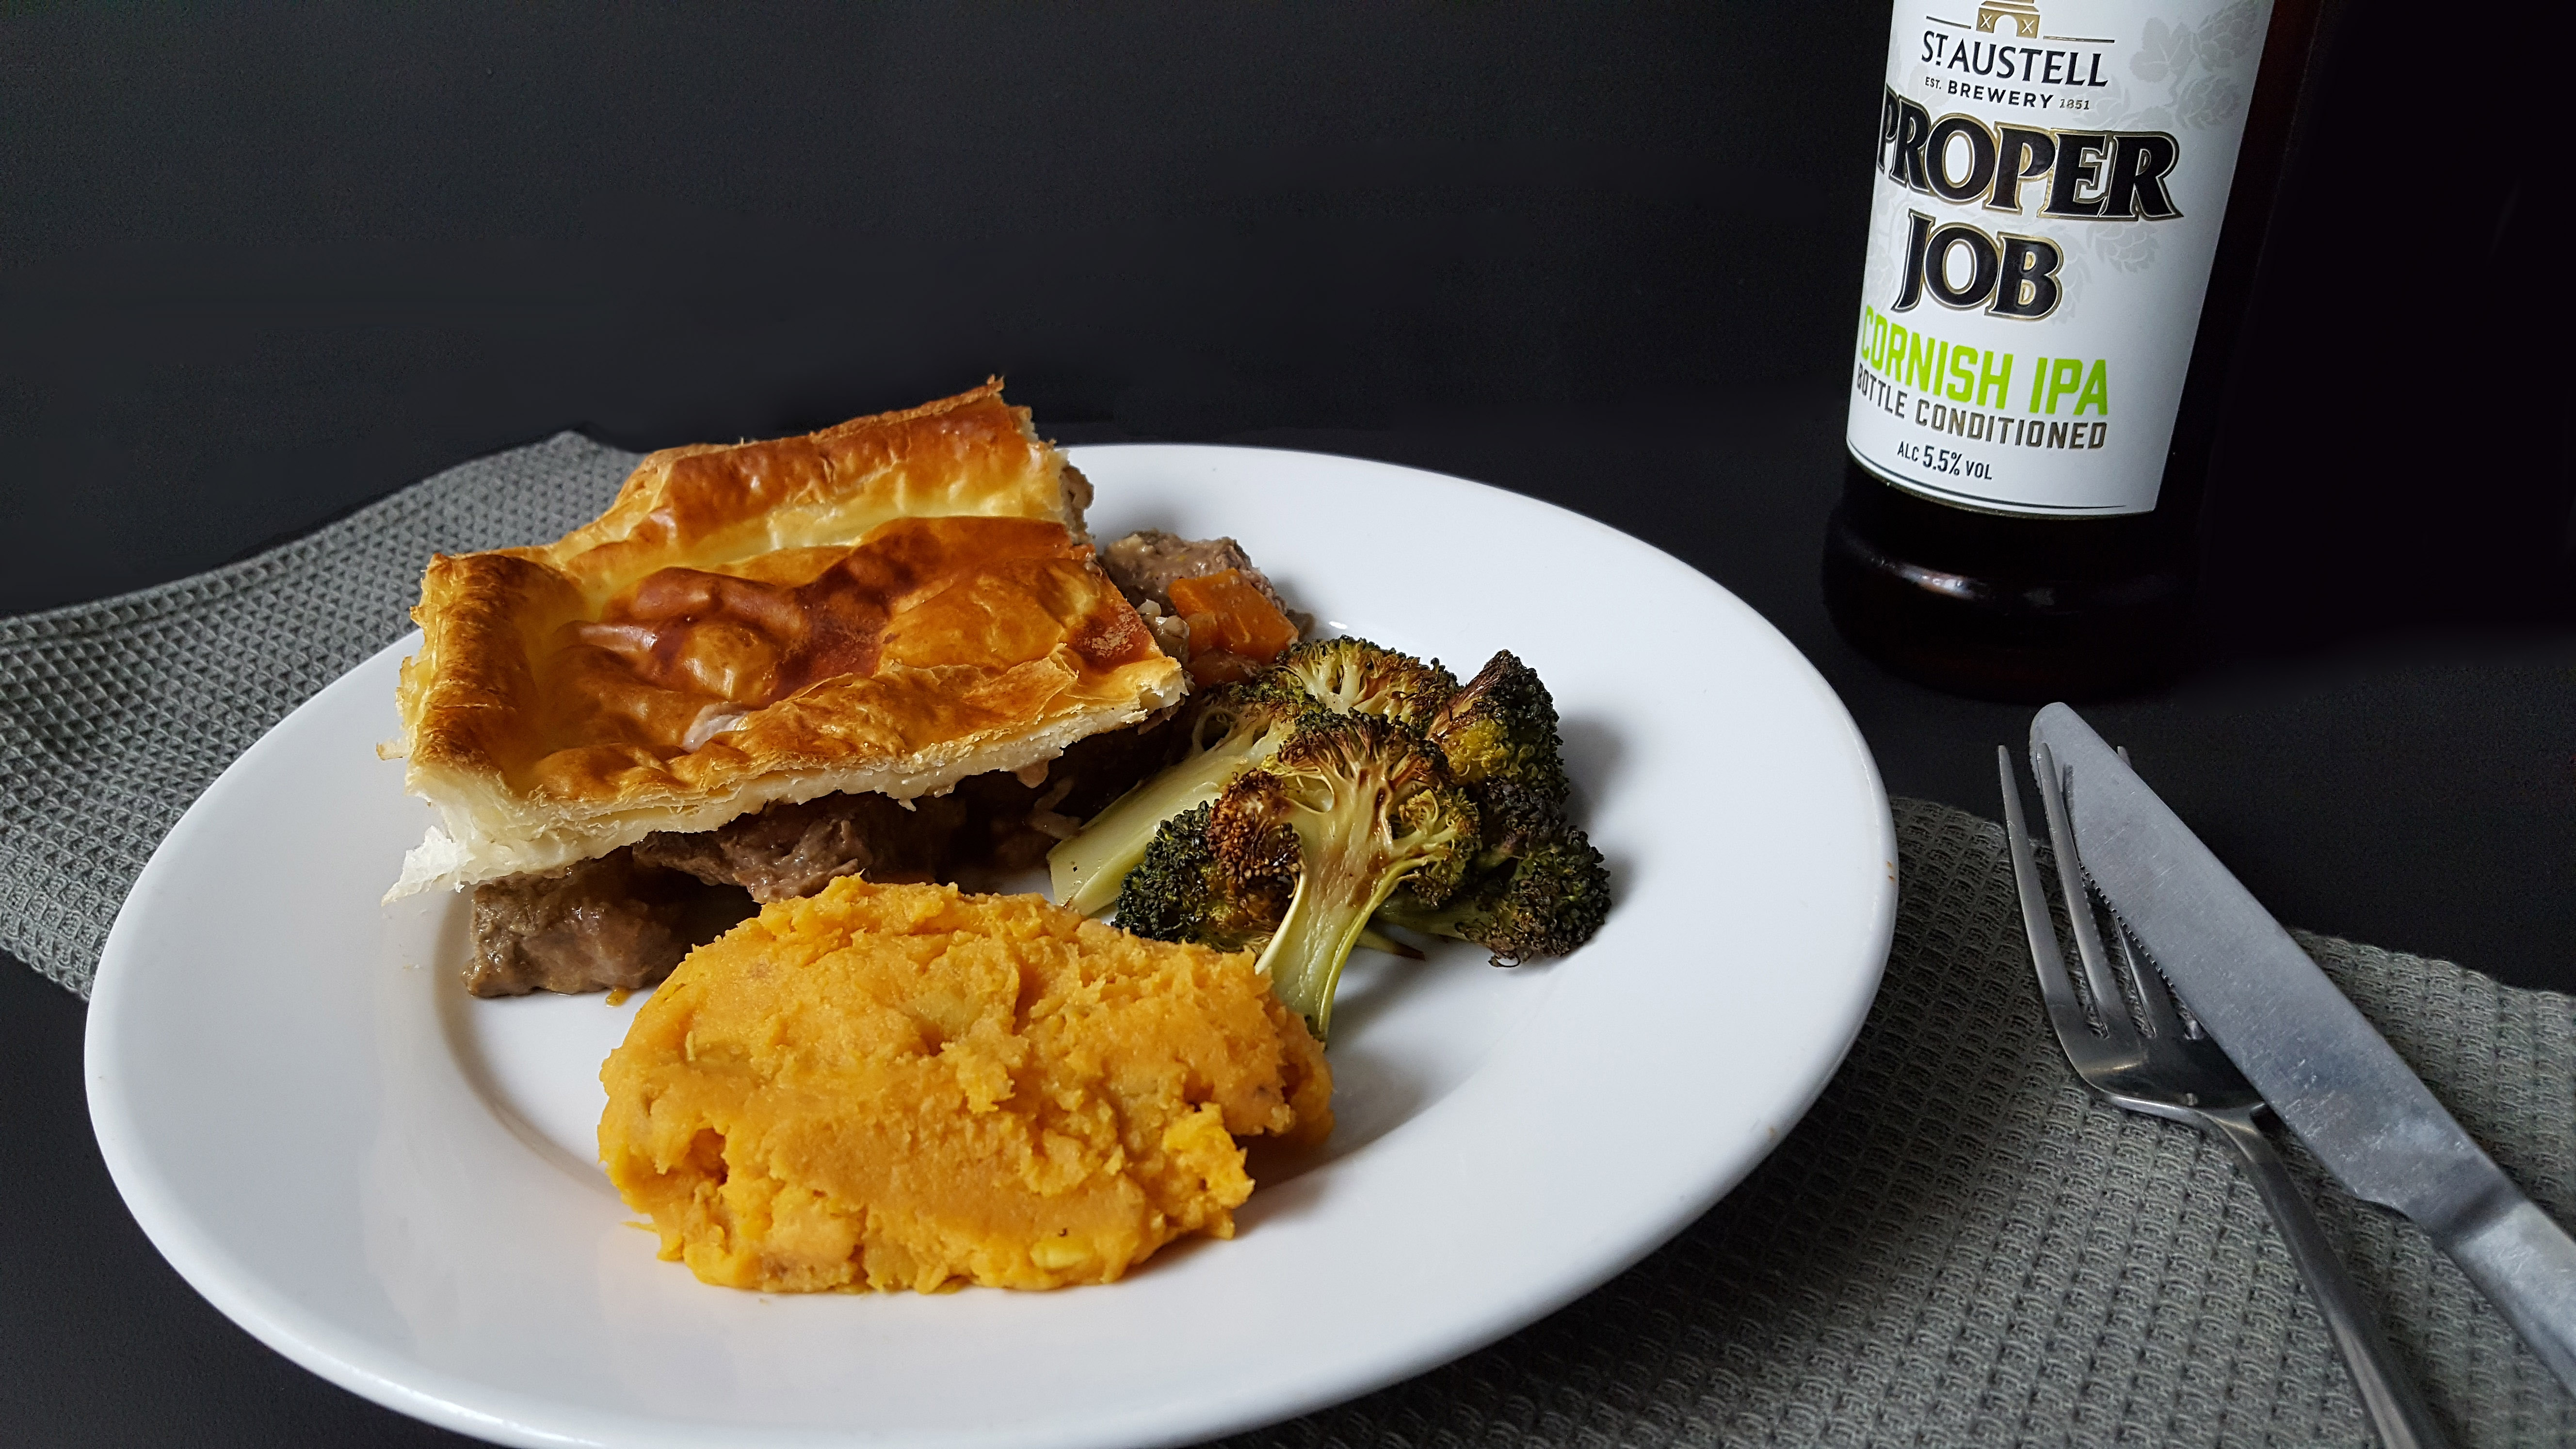 Steak Pie served on a plate with flaky puff pastry on top along with sweet potato mash and roasted broccoli. Plus a bottler of Proper Job pale ale.